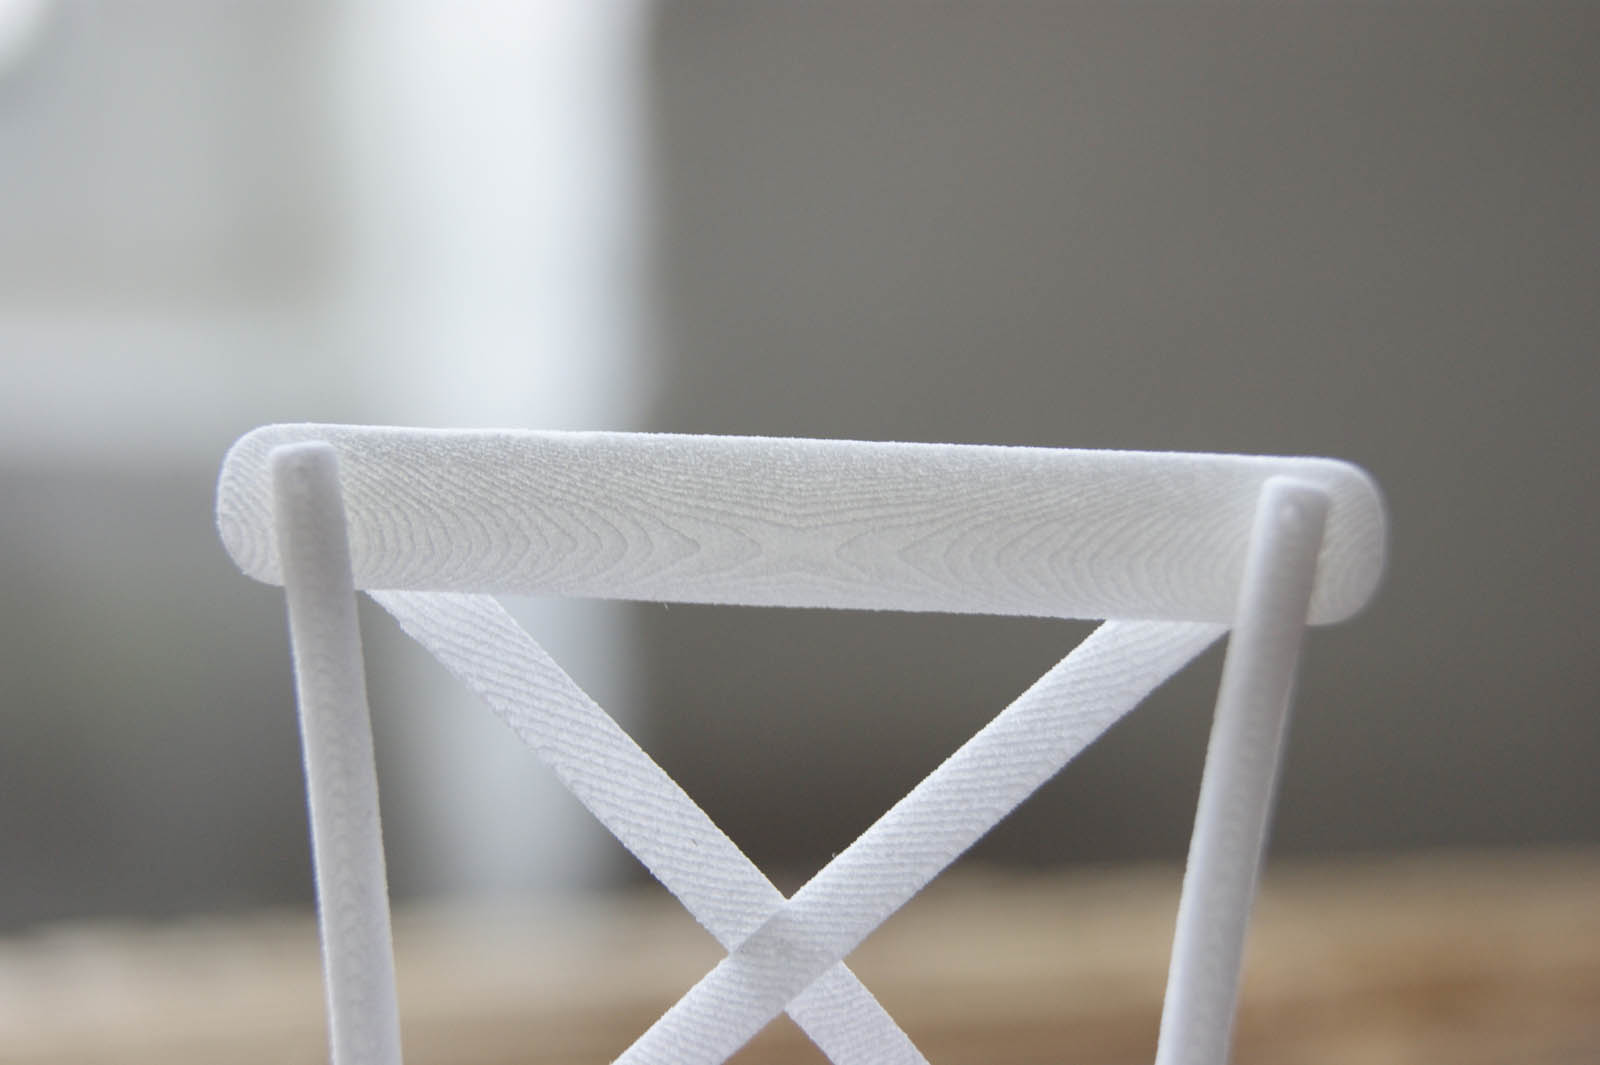 3D Printed Dining Chair